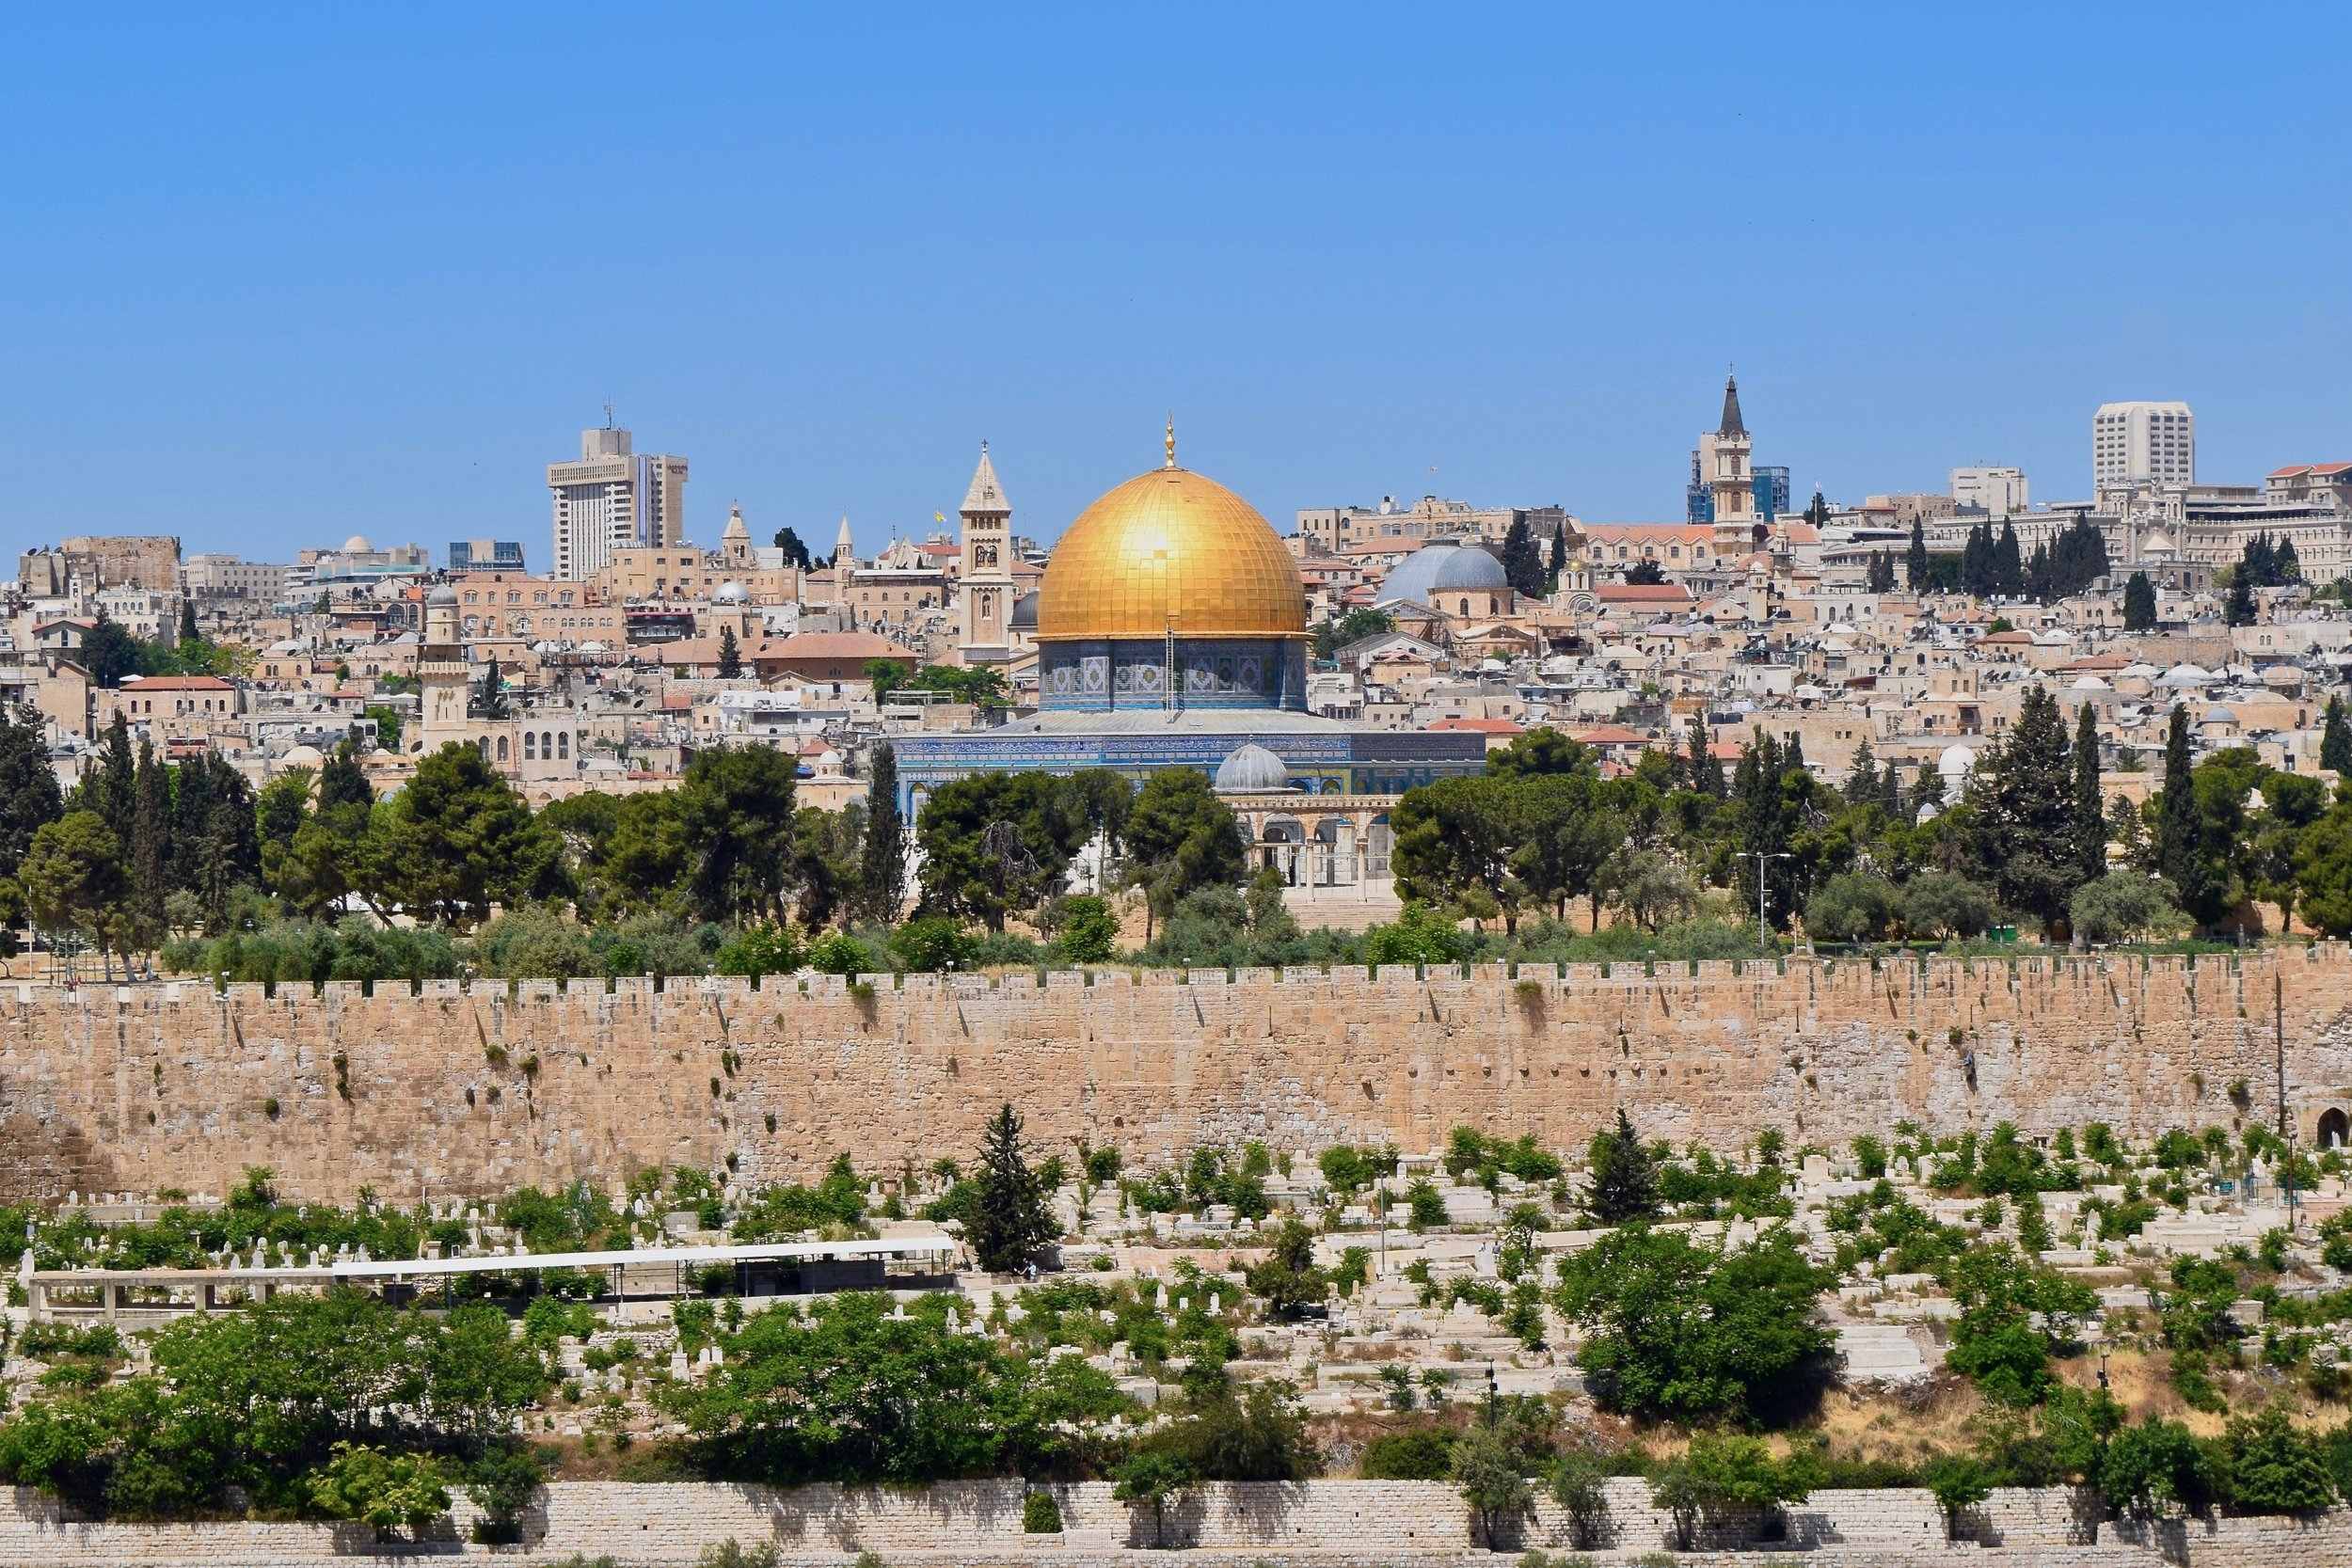 Dome of the Rock from the Mount of Olives